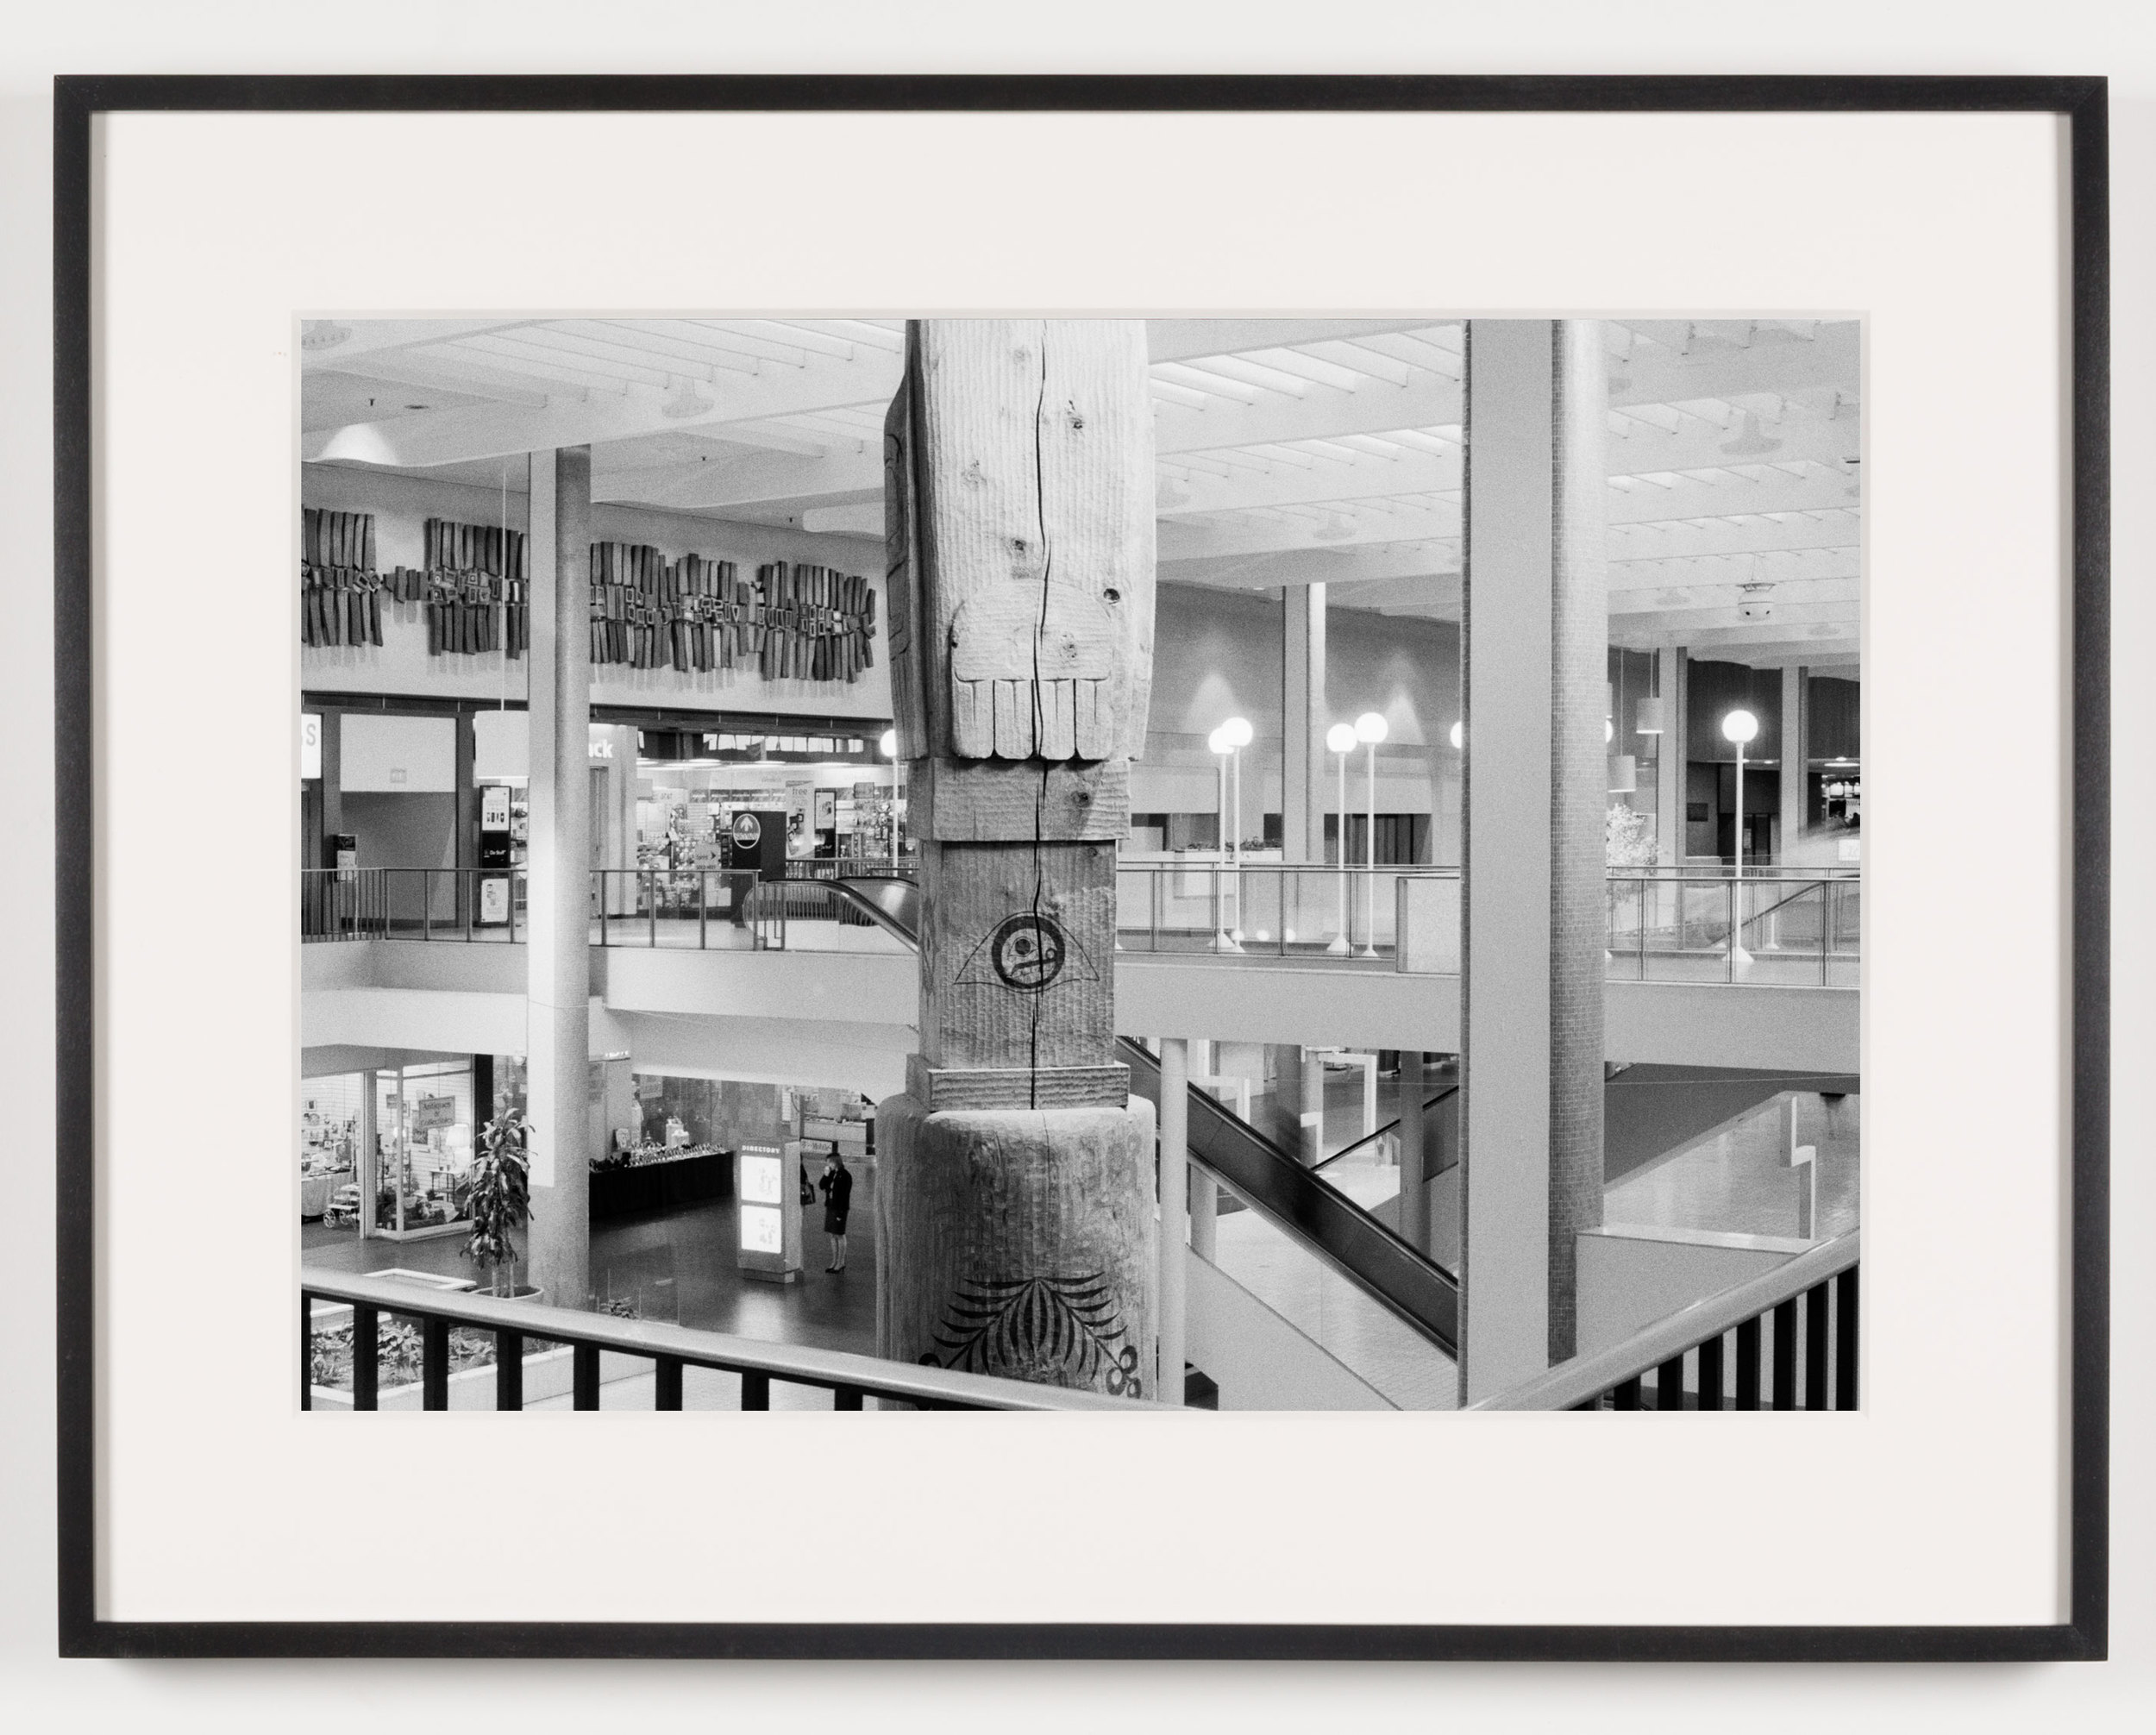 Midtown Plaza (View of Totem Pole, Back), Rochester, NY, Est. 1962, Demo. 2010    2011   Epson Ultrachrome K3 archival ink jet print on Hahnemühle Photo Rag paper  21 5/8 x 28 1/8 inches   A Diagram of Forces, 2011